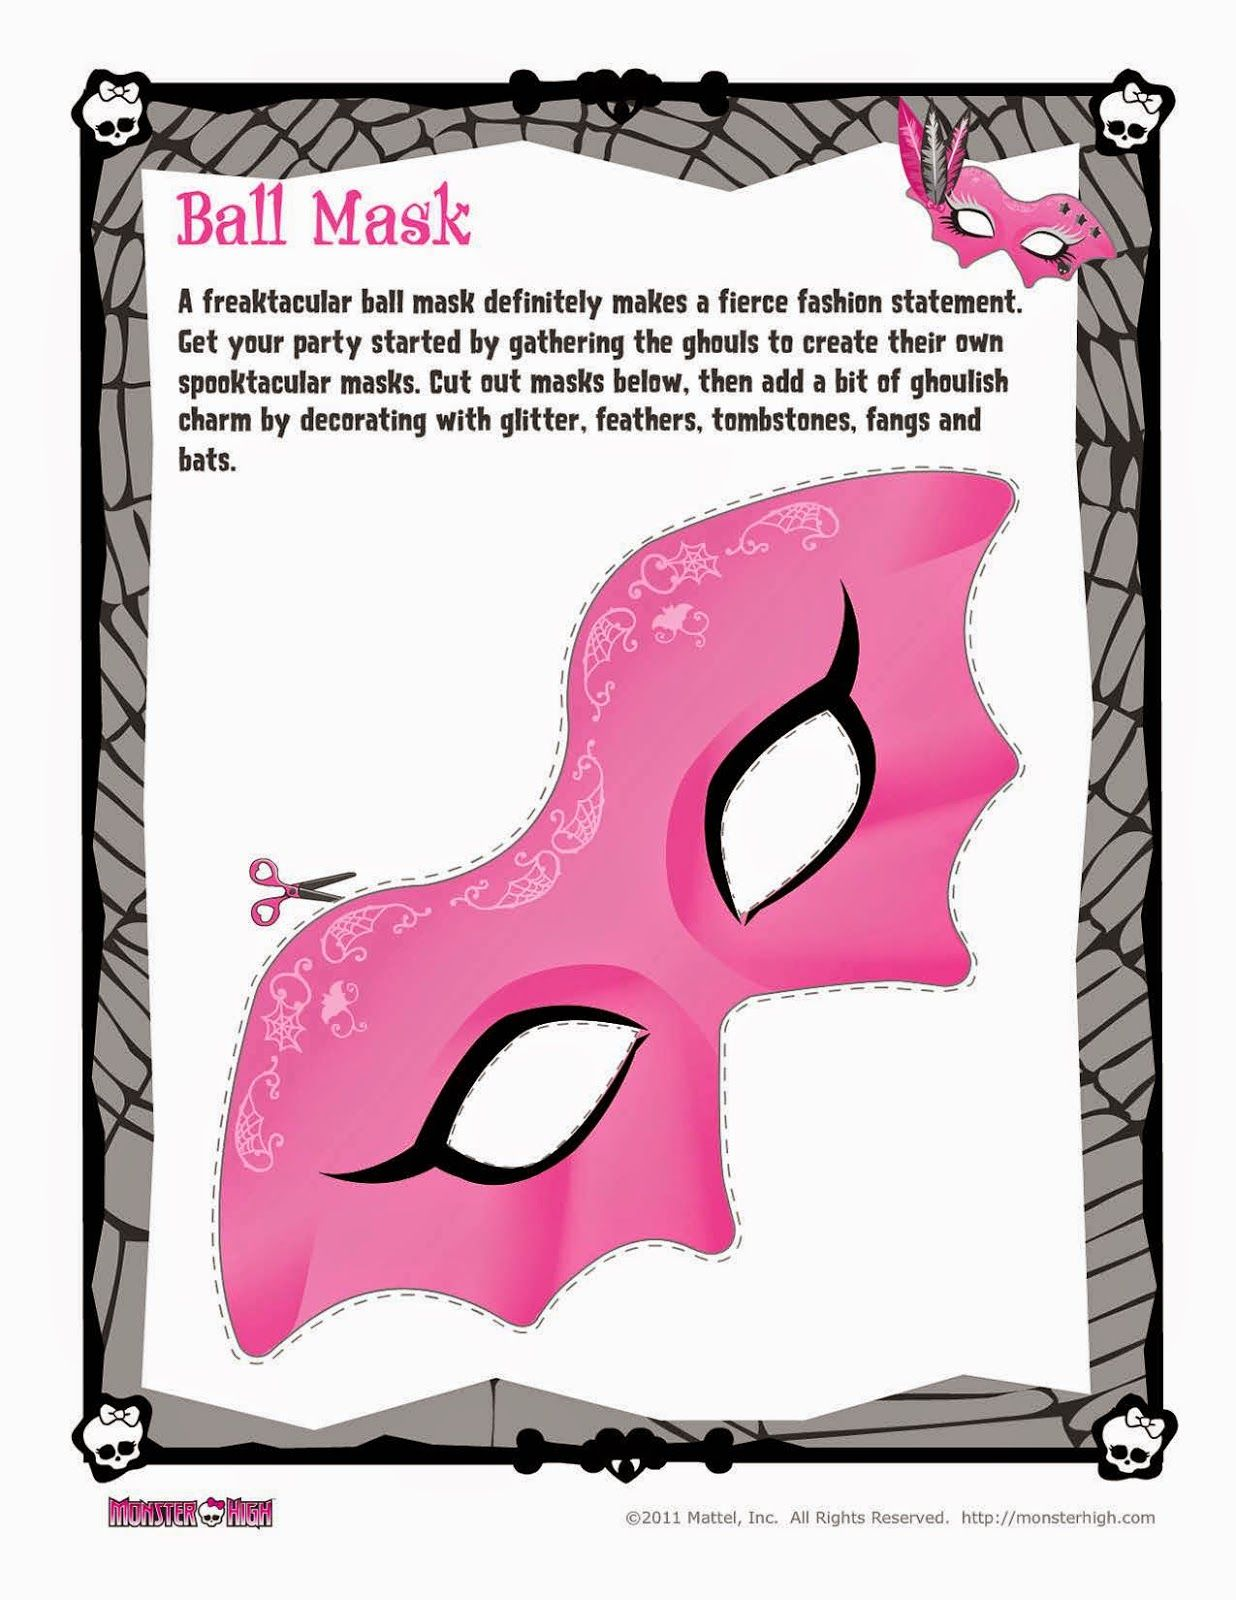 Monster high free printable ball mask carnevale masks pinterest monster high free - Masque monster high ...